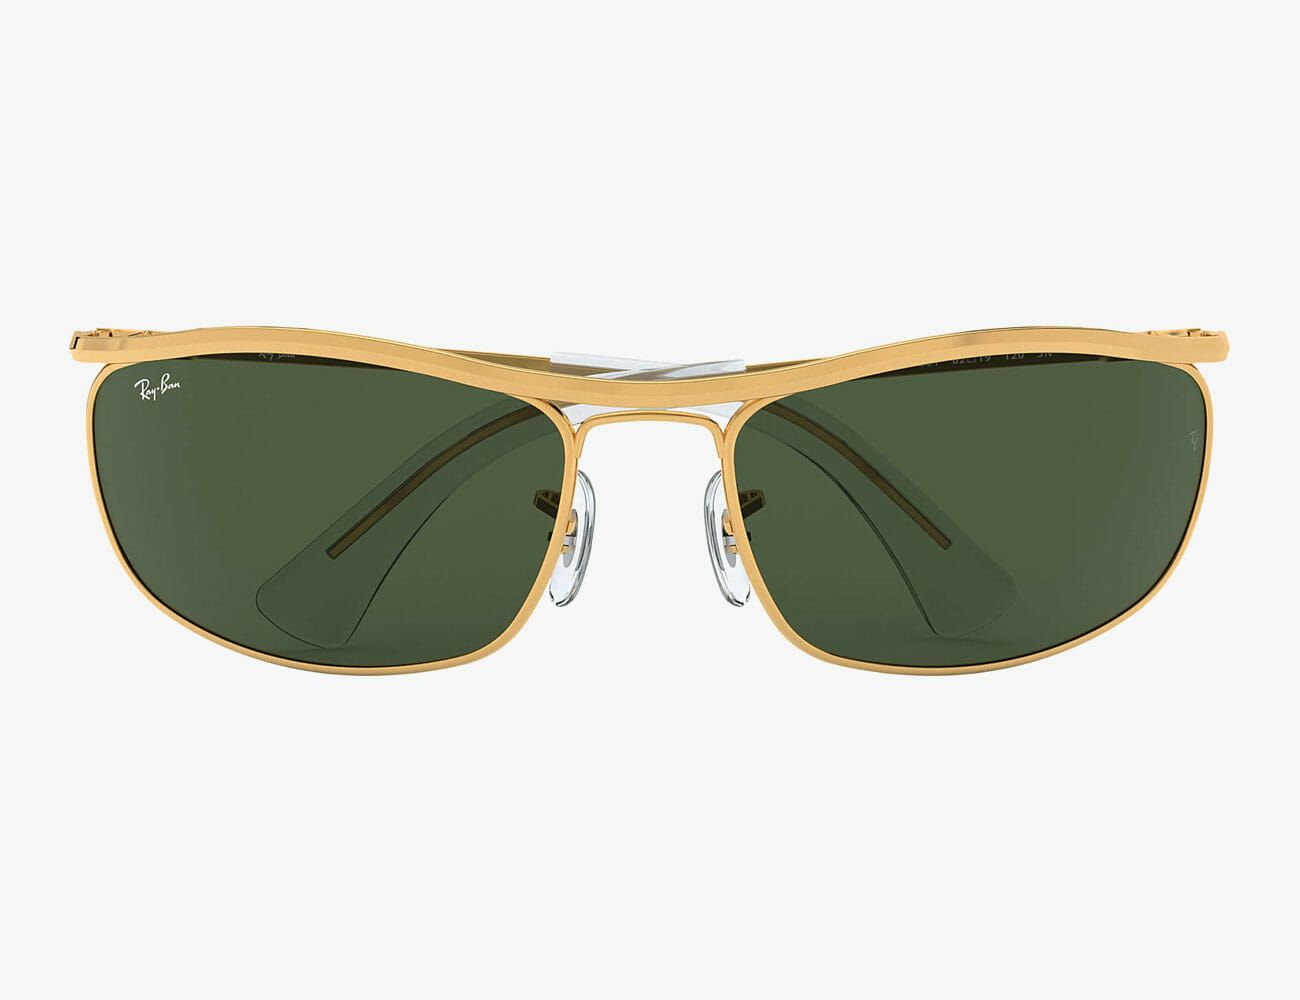 Everything You Need to Know About Ray Ban Sunglasses • Gear